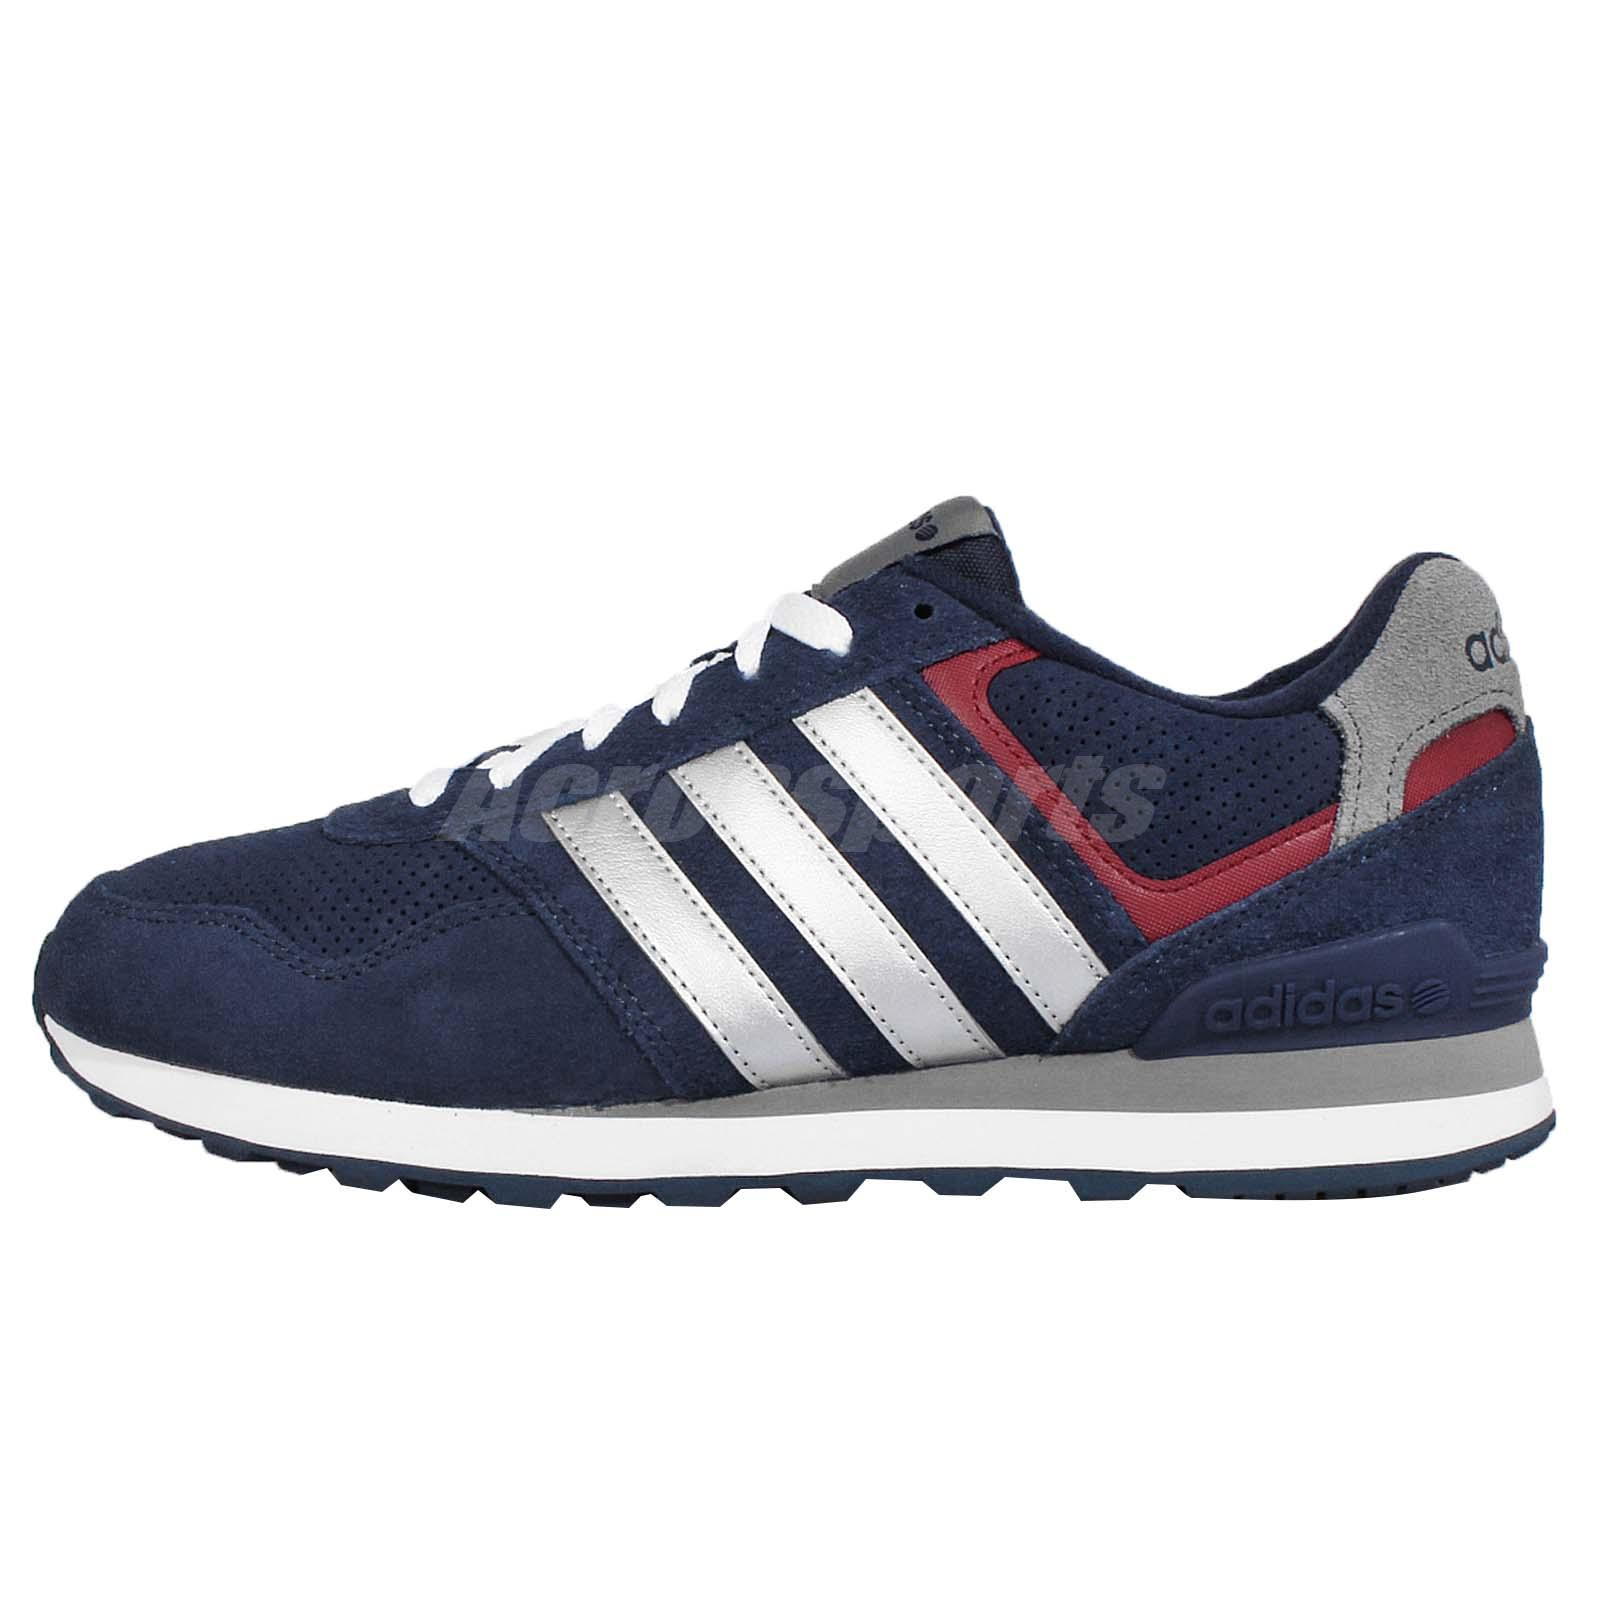 adidas neo label runeo 10k navy silver mens running shoes. Black Bedroom Furniture Sets. Home Design Ideas